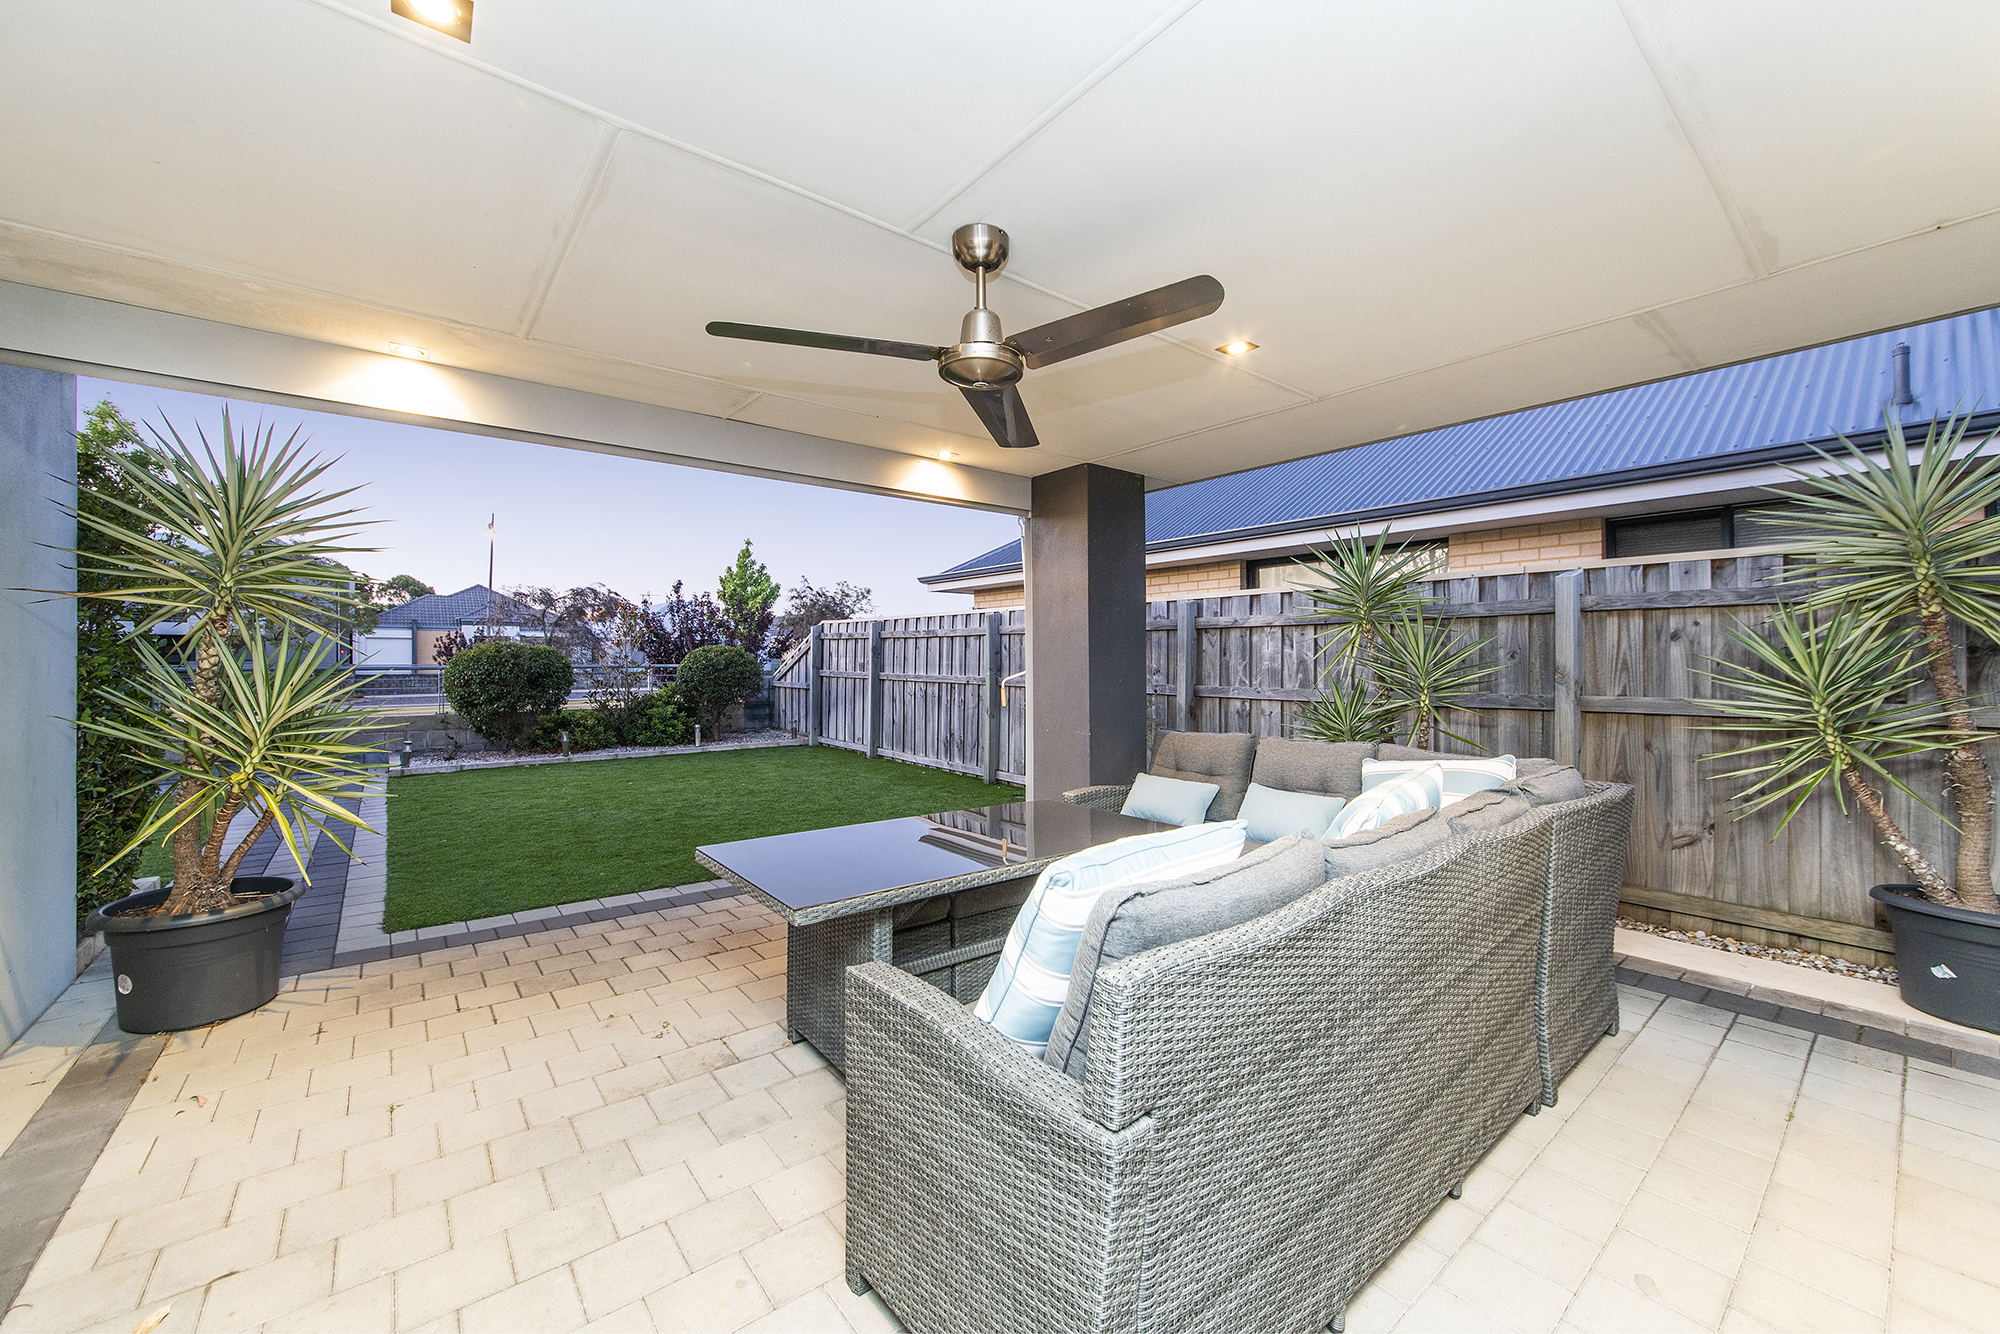 Property for sale in CANNING VALE, 2 Cranfield Lane : Attree Real Estate